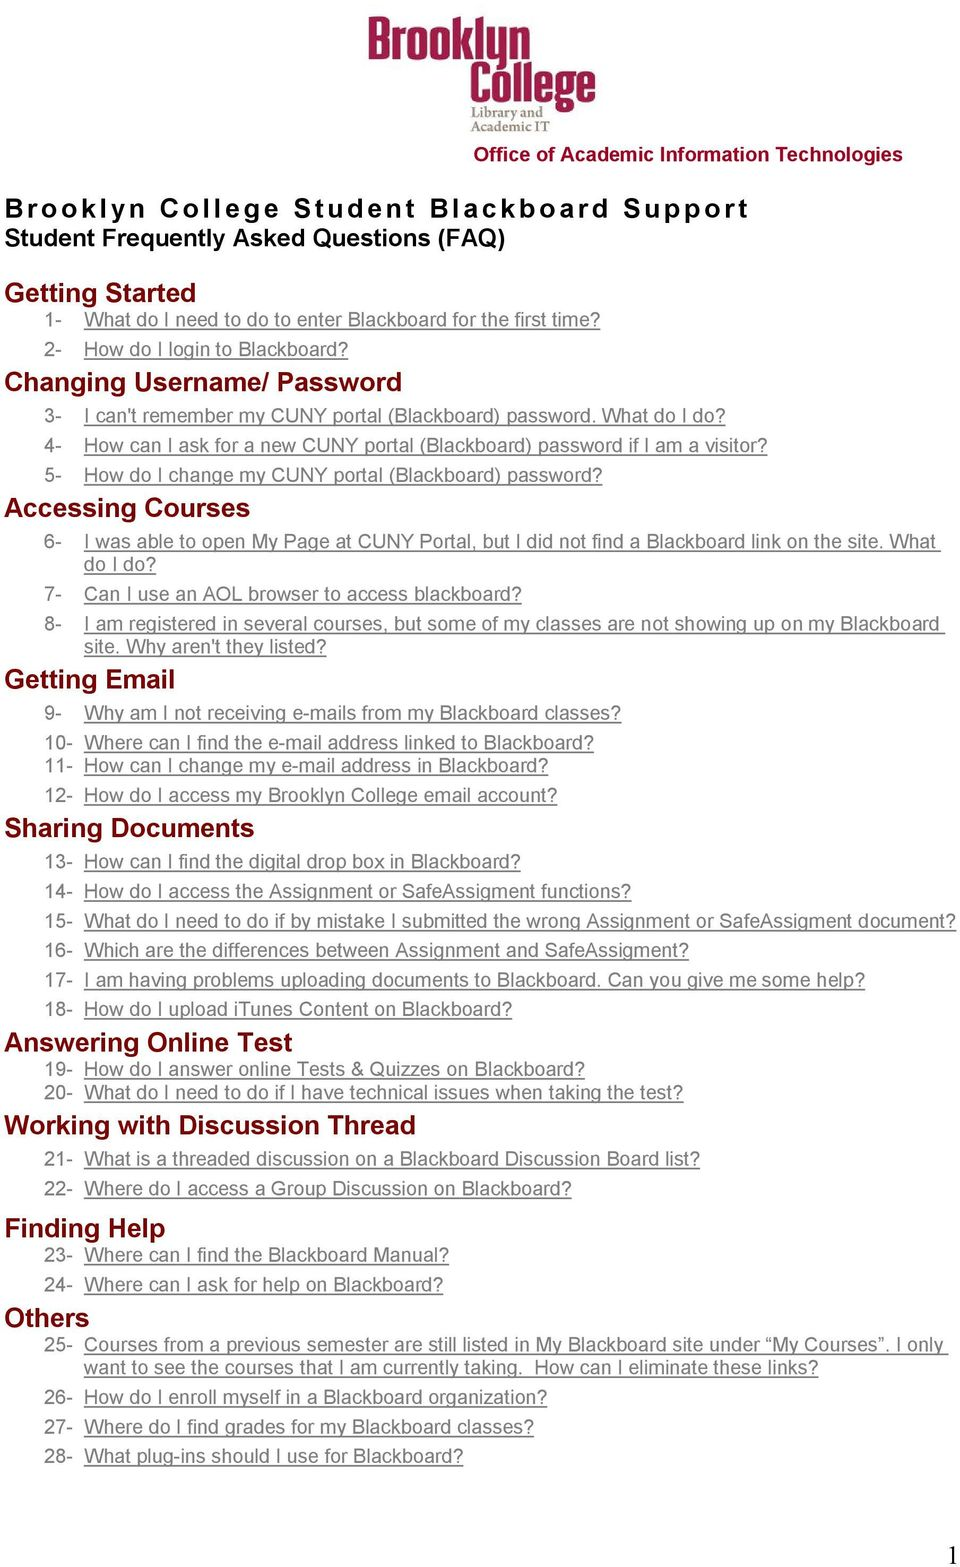 4 How Can I Ask For A New Cuny Portal Blackboard Password If I